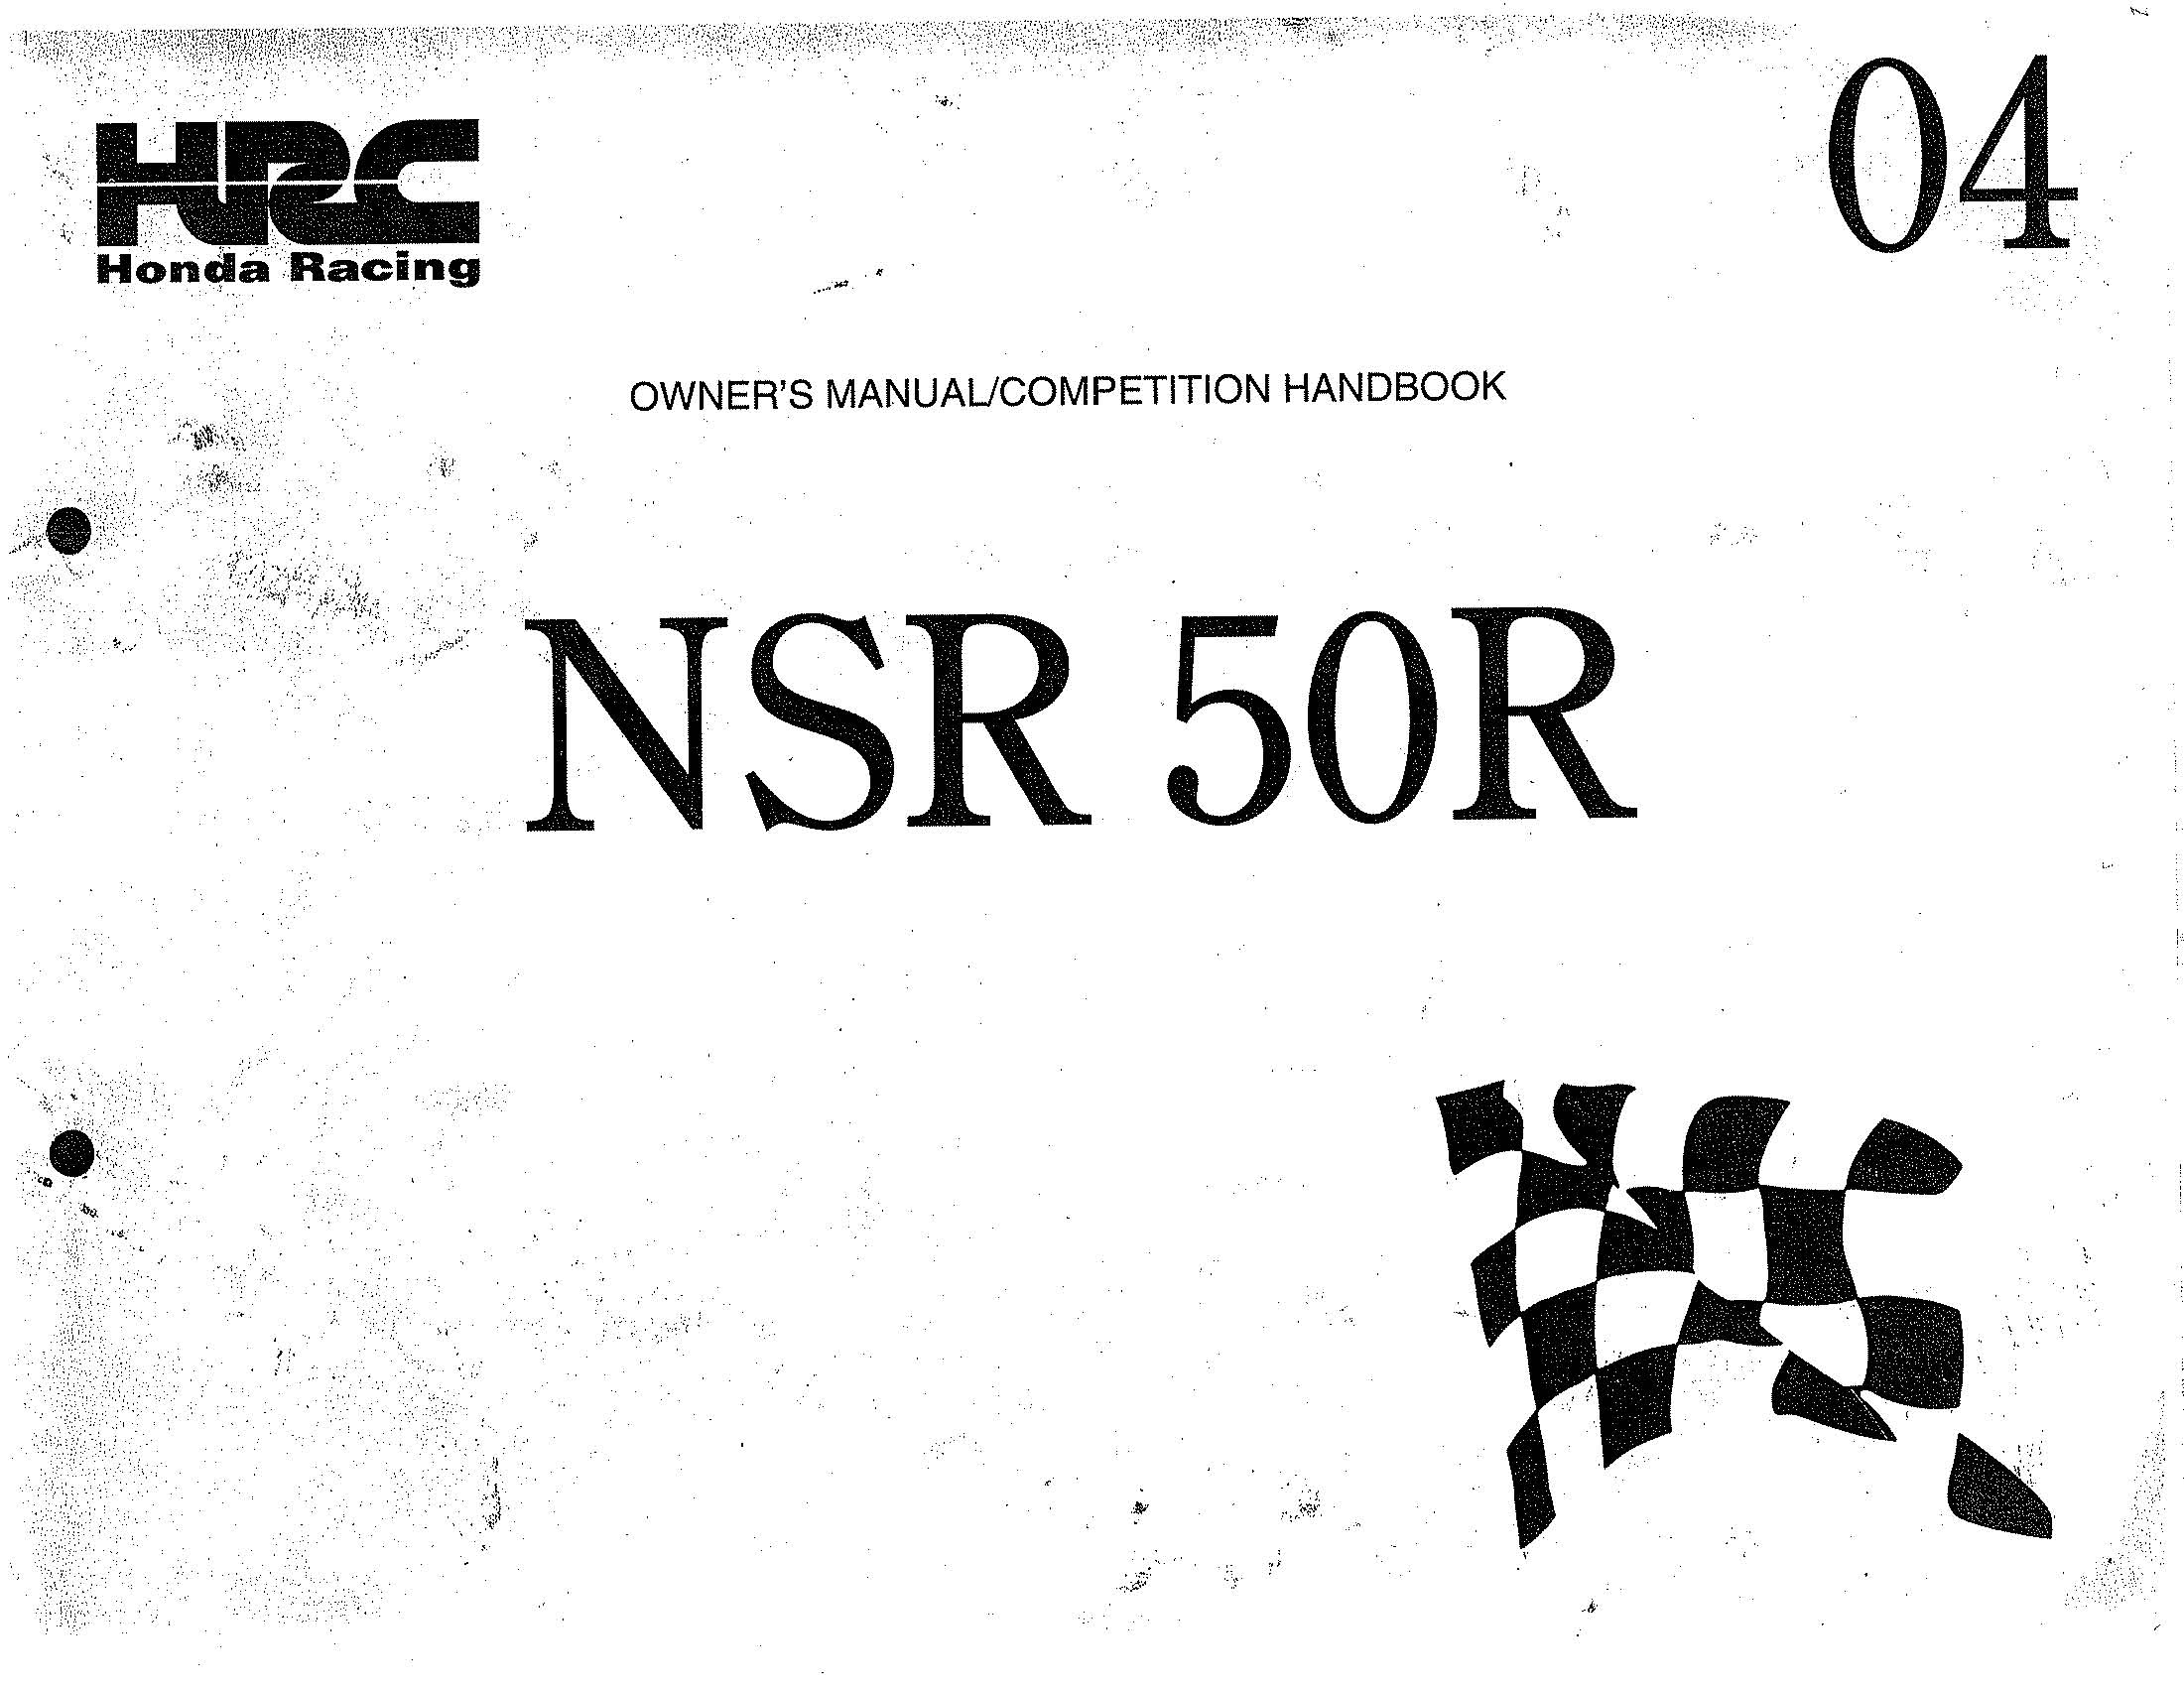 Owner's Manual for Honda NSR50R